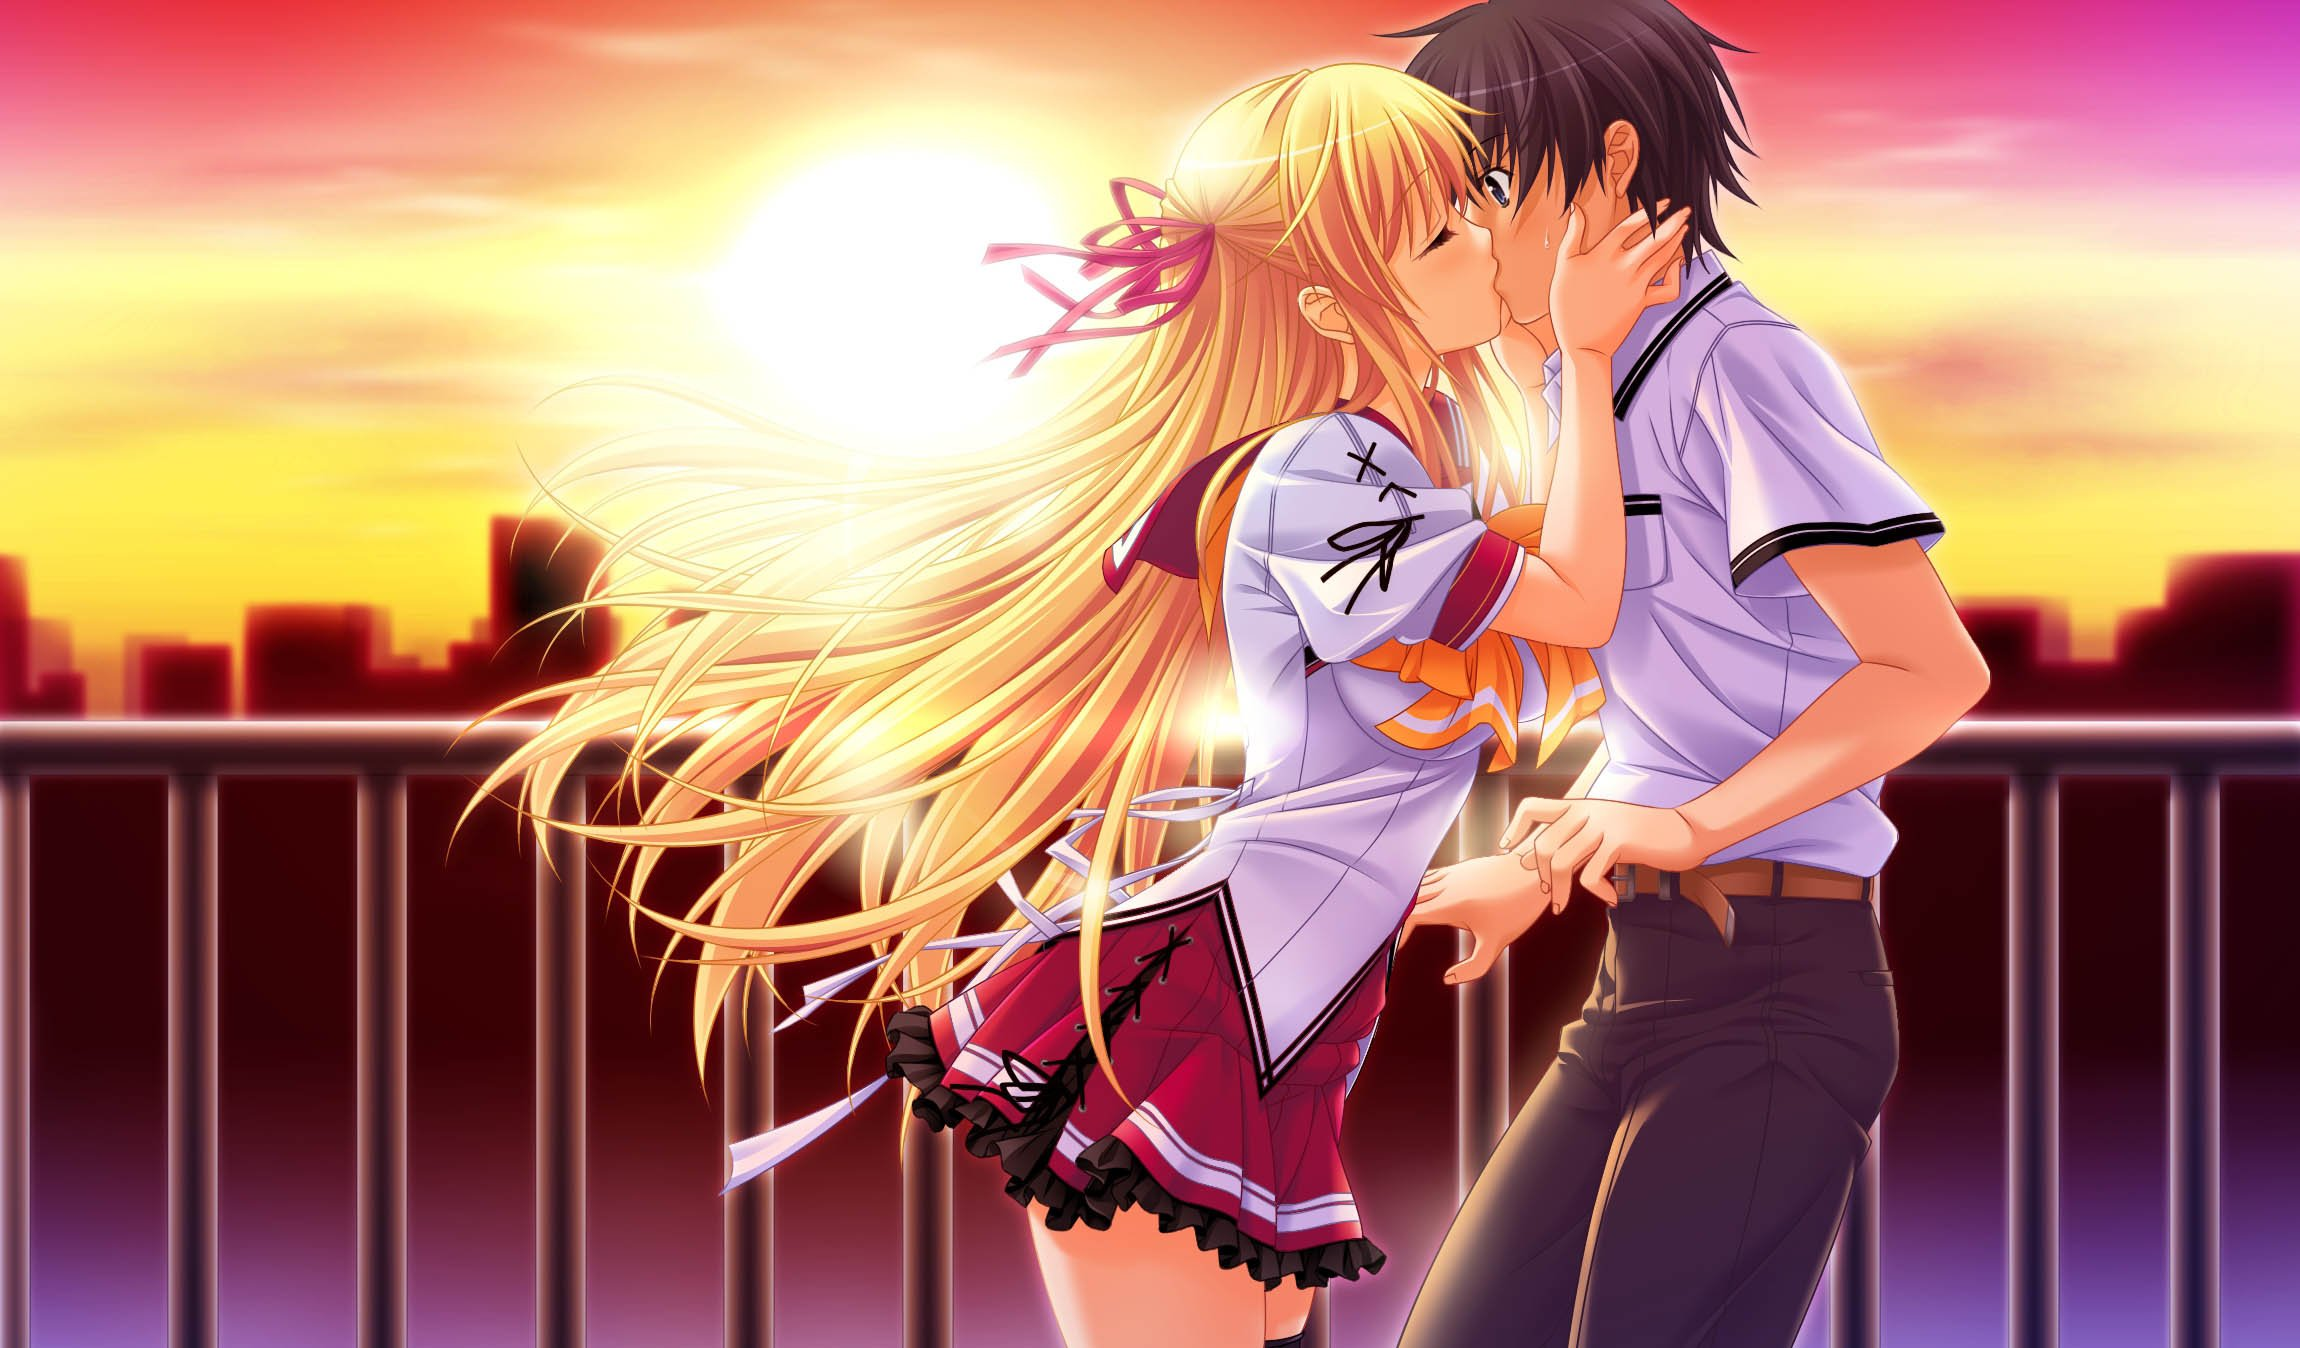 Love Kiss Wallpaper cartoon : Anime Kiss Wallpapers - WallpaperSafari